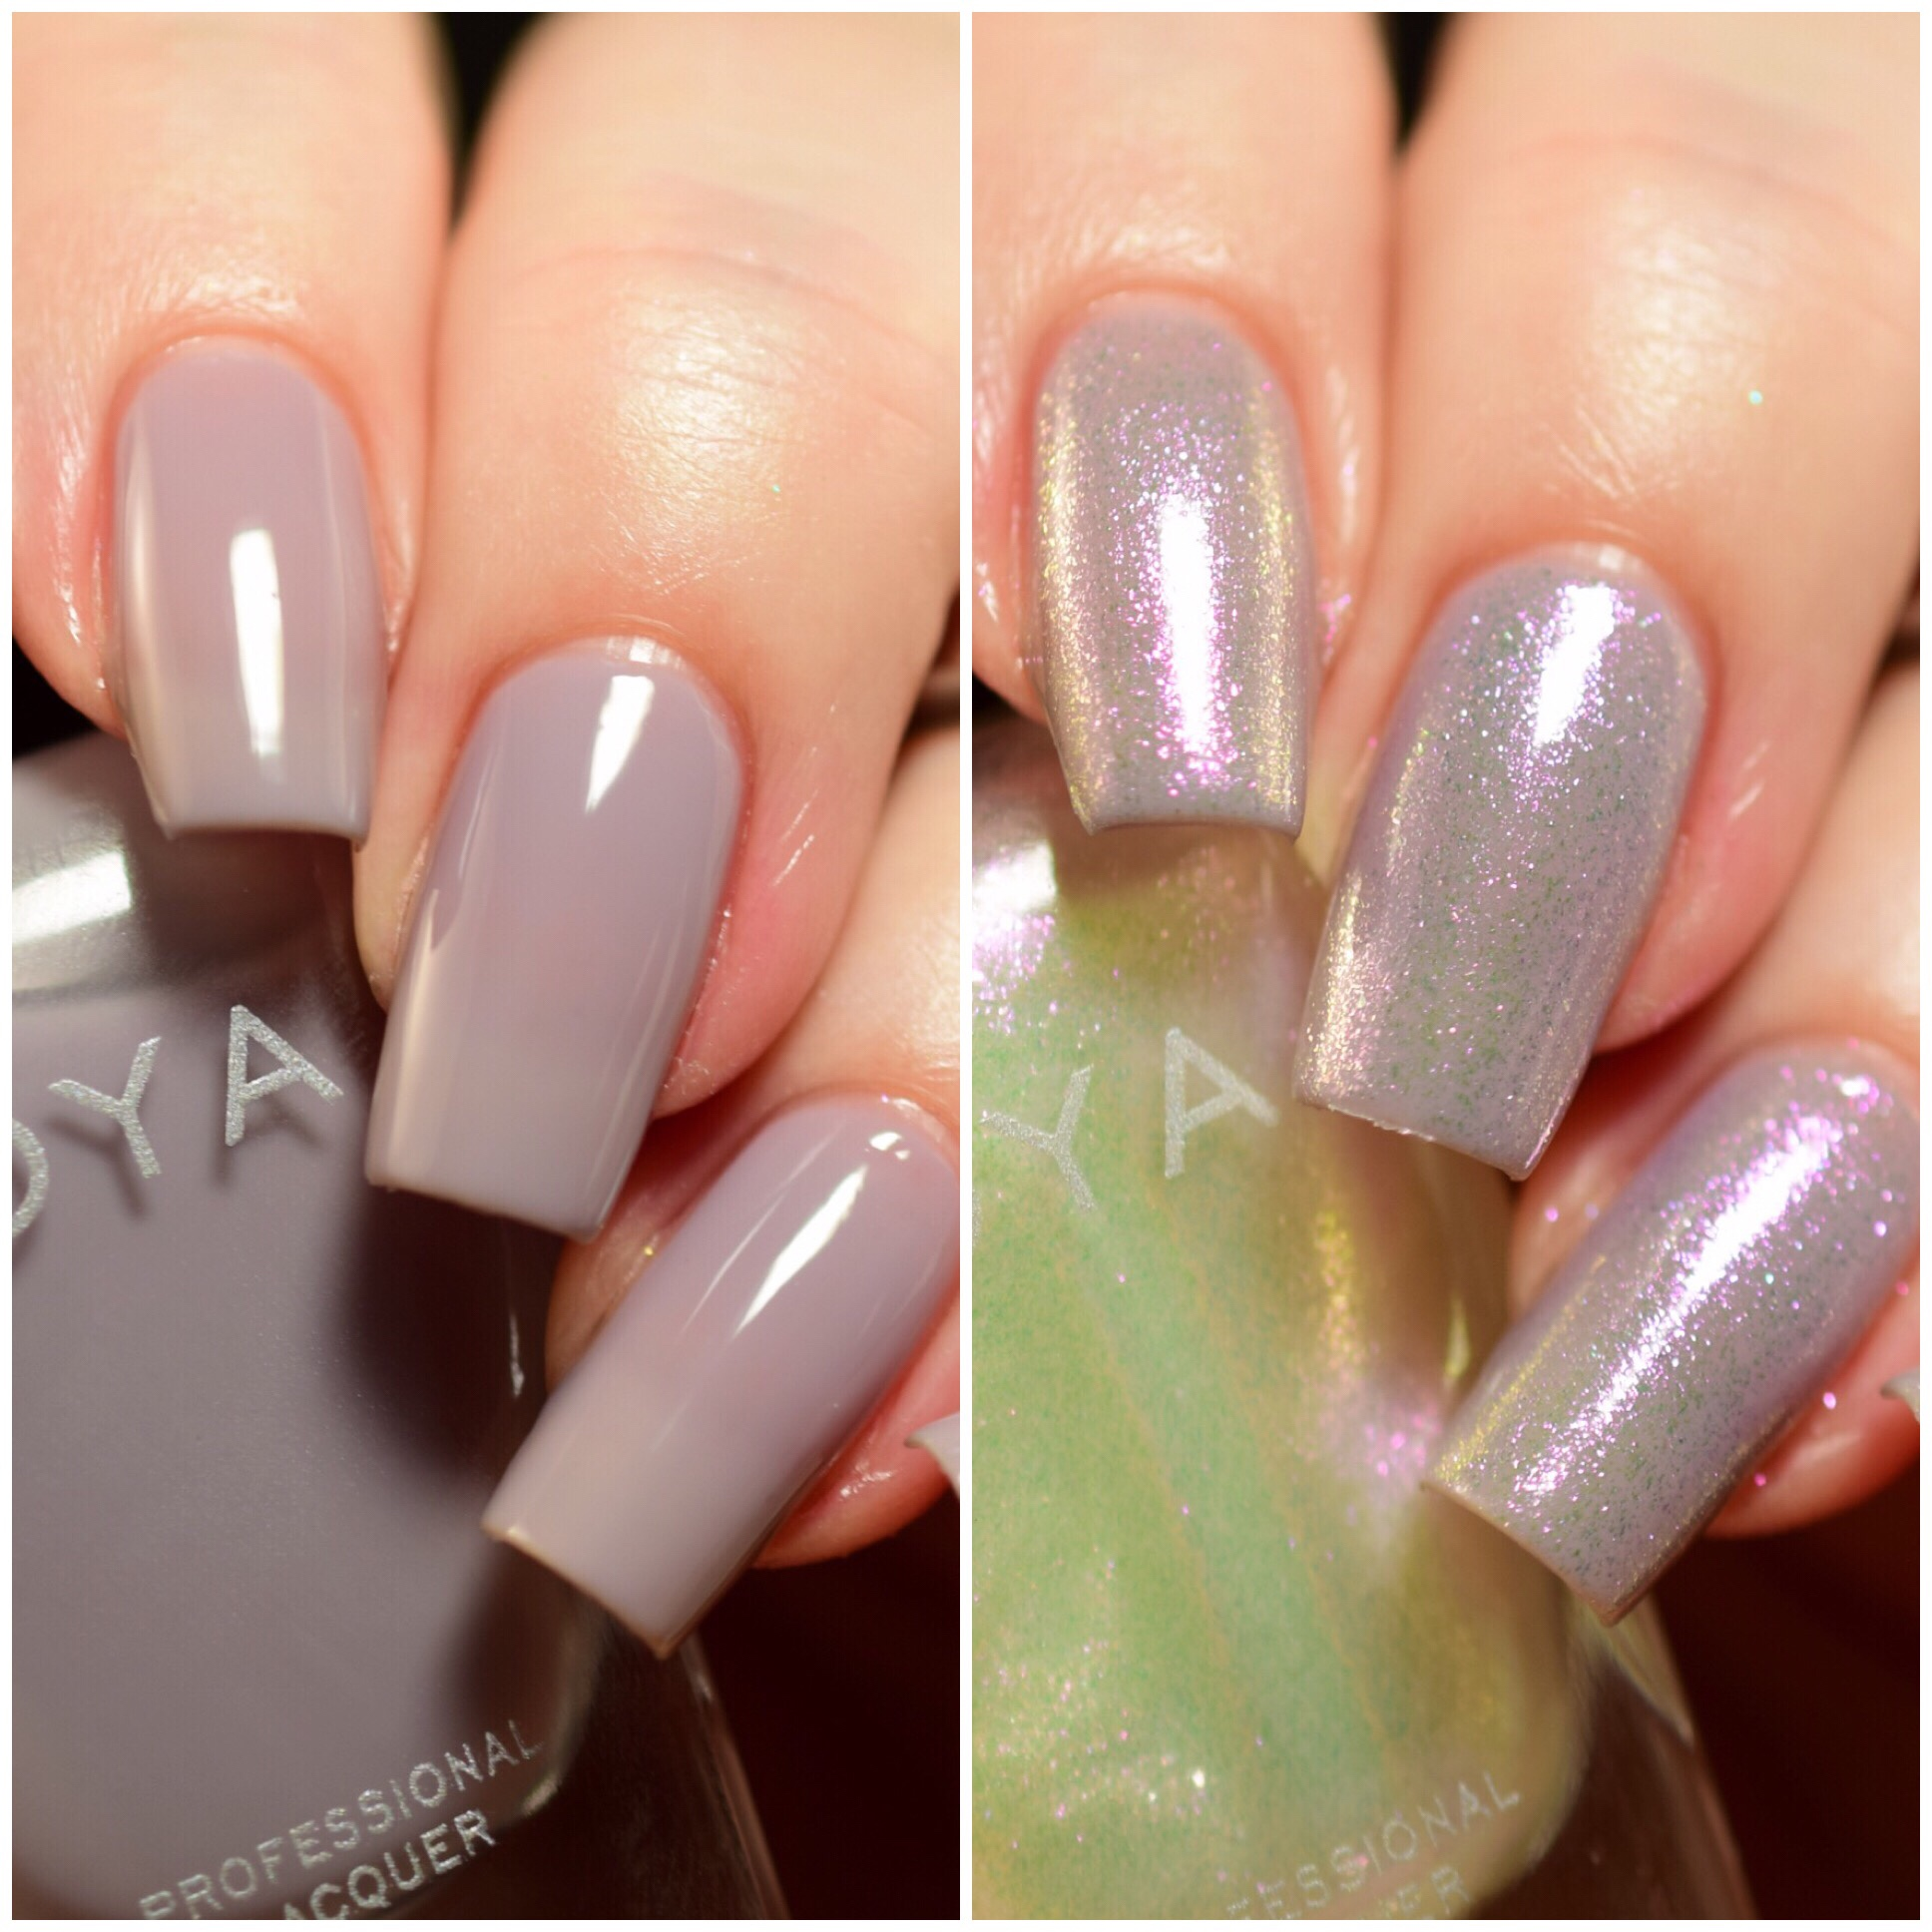 Zoya Leia layered over Zoya Vickie